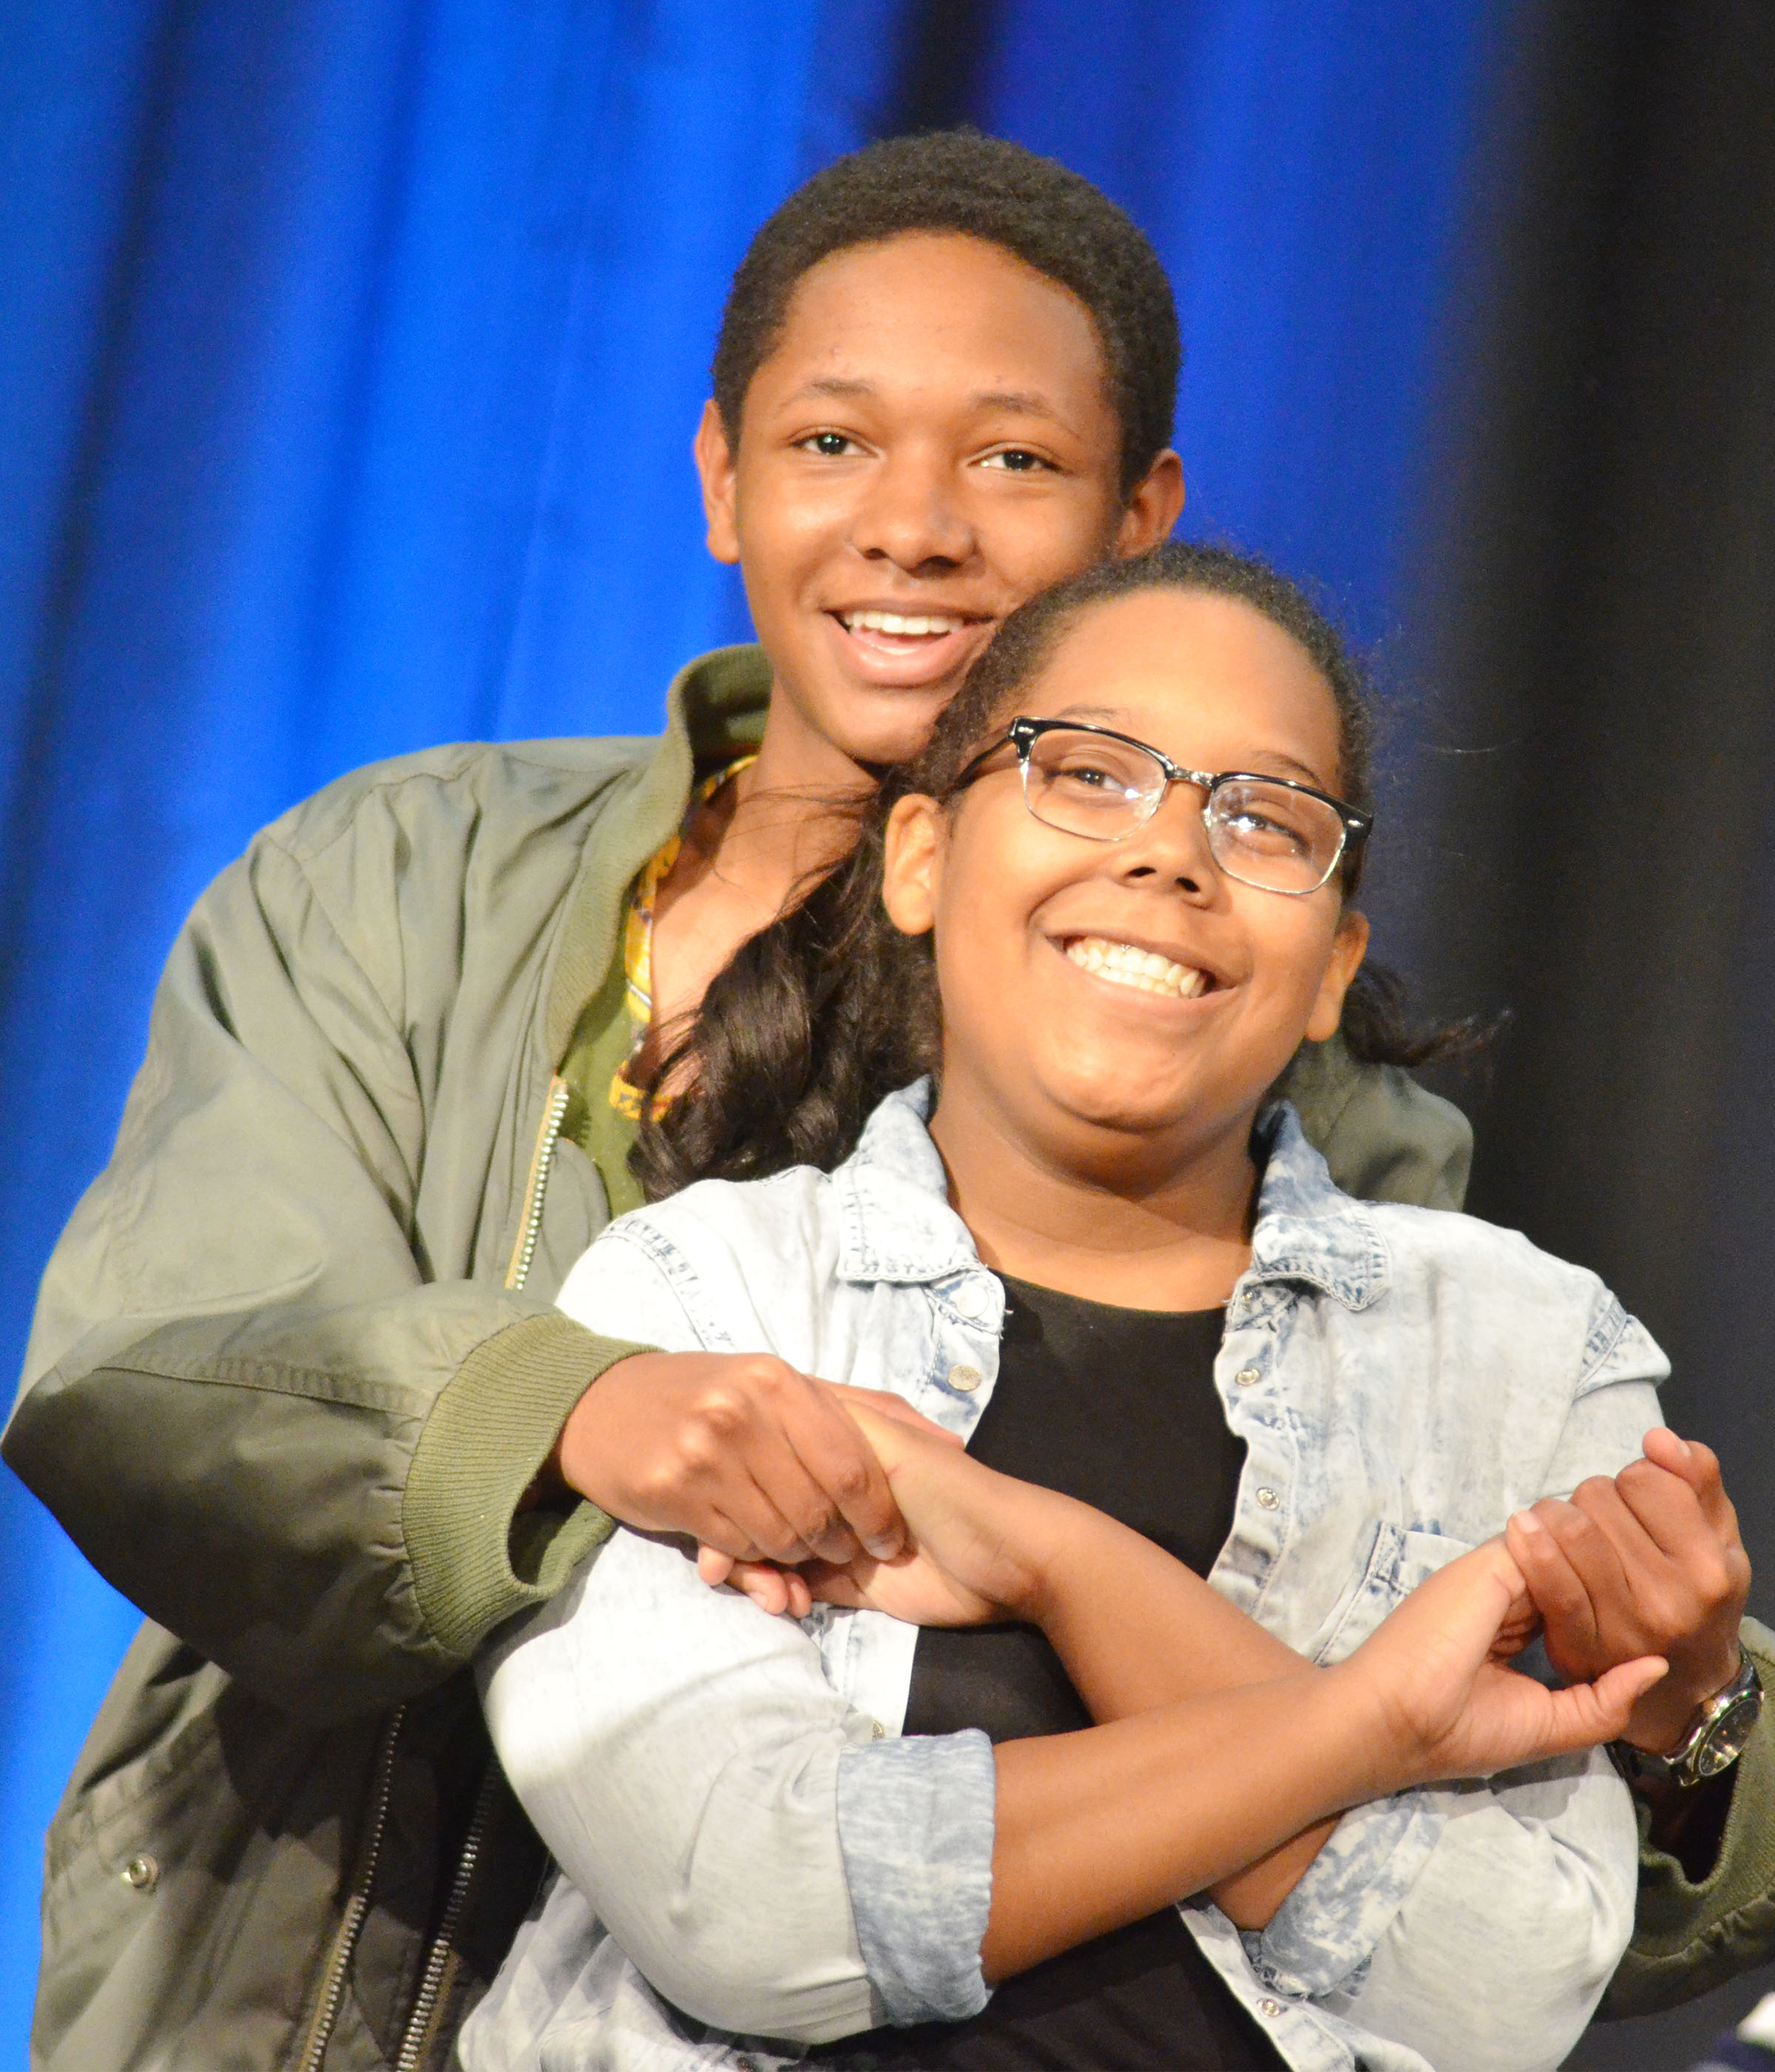 CHS senior Jaleel Cowan dances with his sister, Zaria, a freshman.